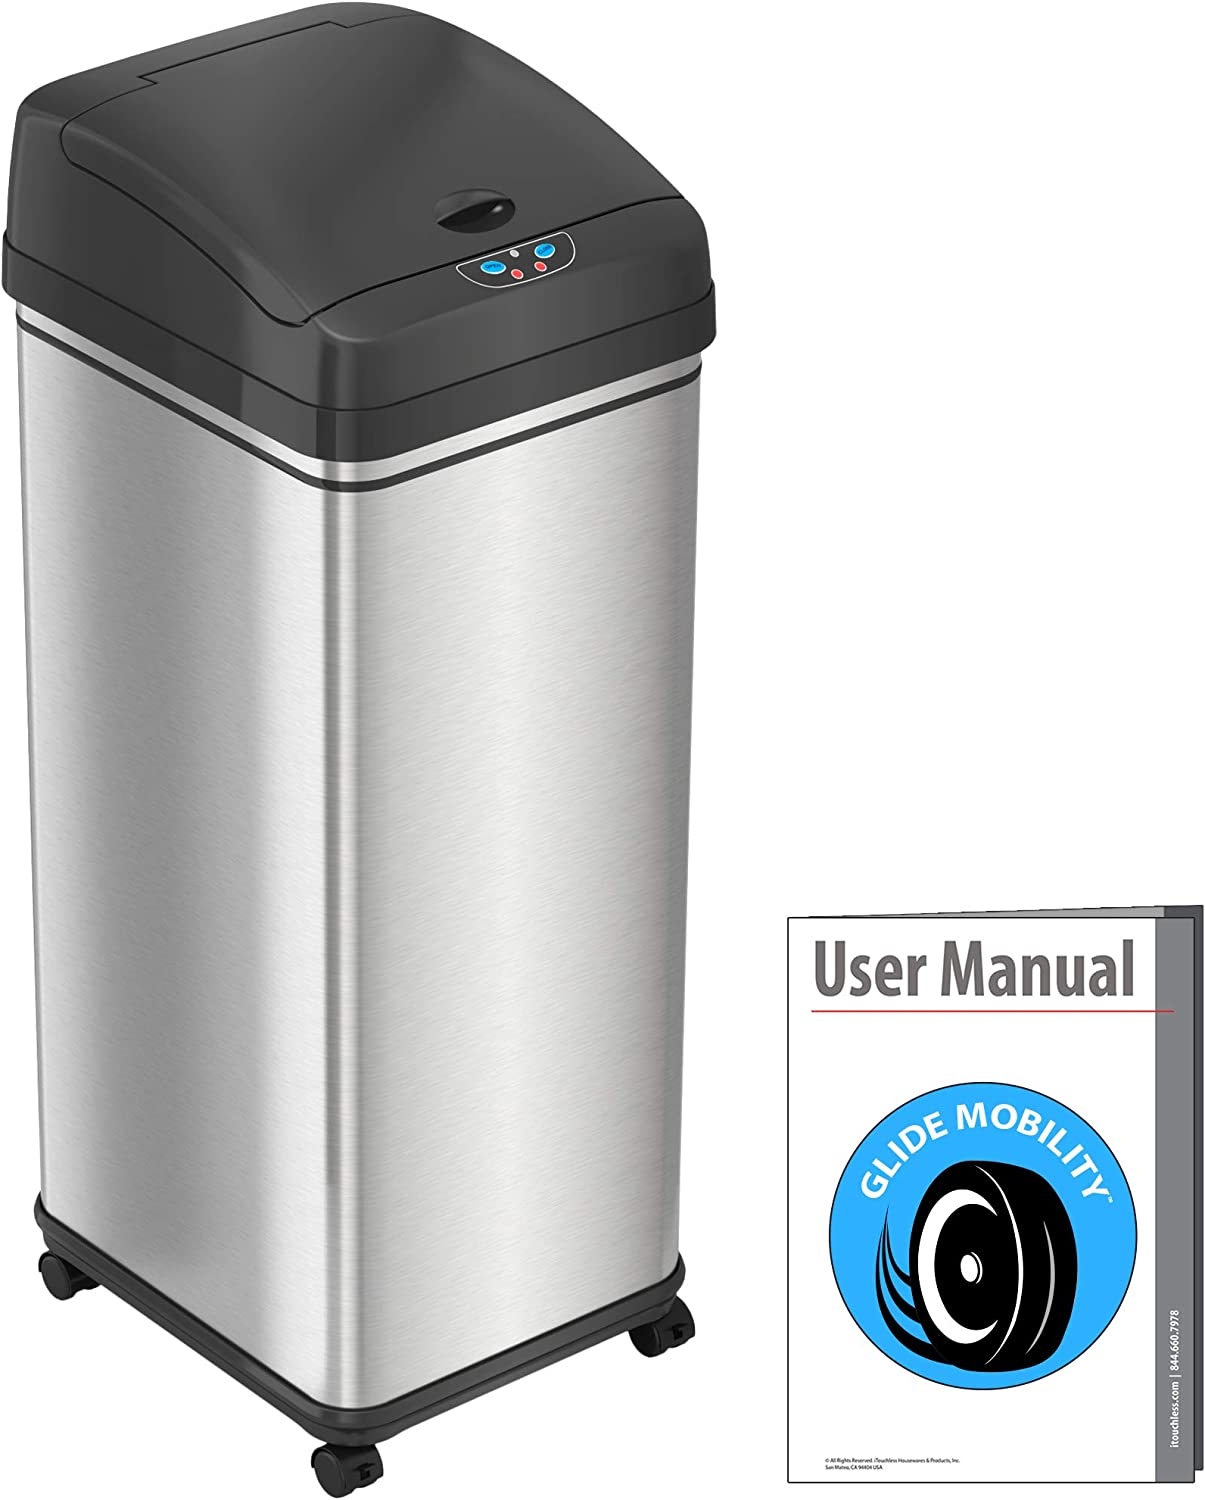 iTouchless Glide 13 Gallon Sensor Garbage Can with Wheels and Odor Control System, Stainless Steel, Automatic Kitchen Bin and Office Trash Bin (Powered by Battery or Optional AC Adapter)